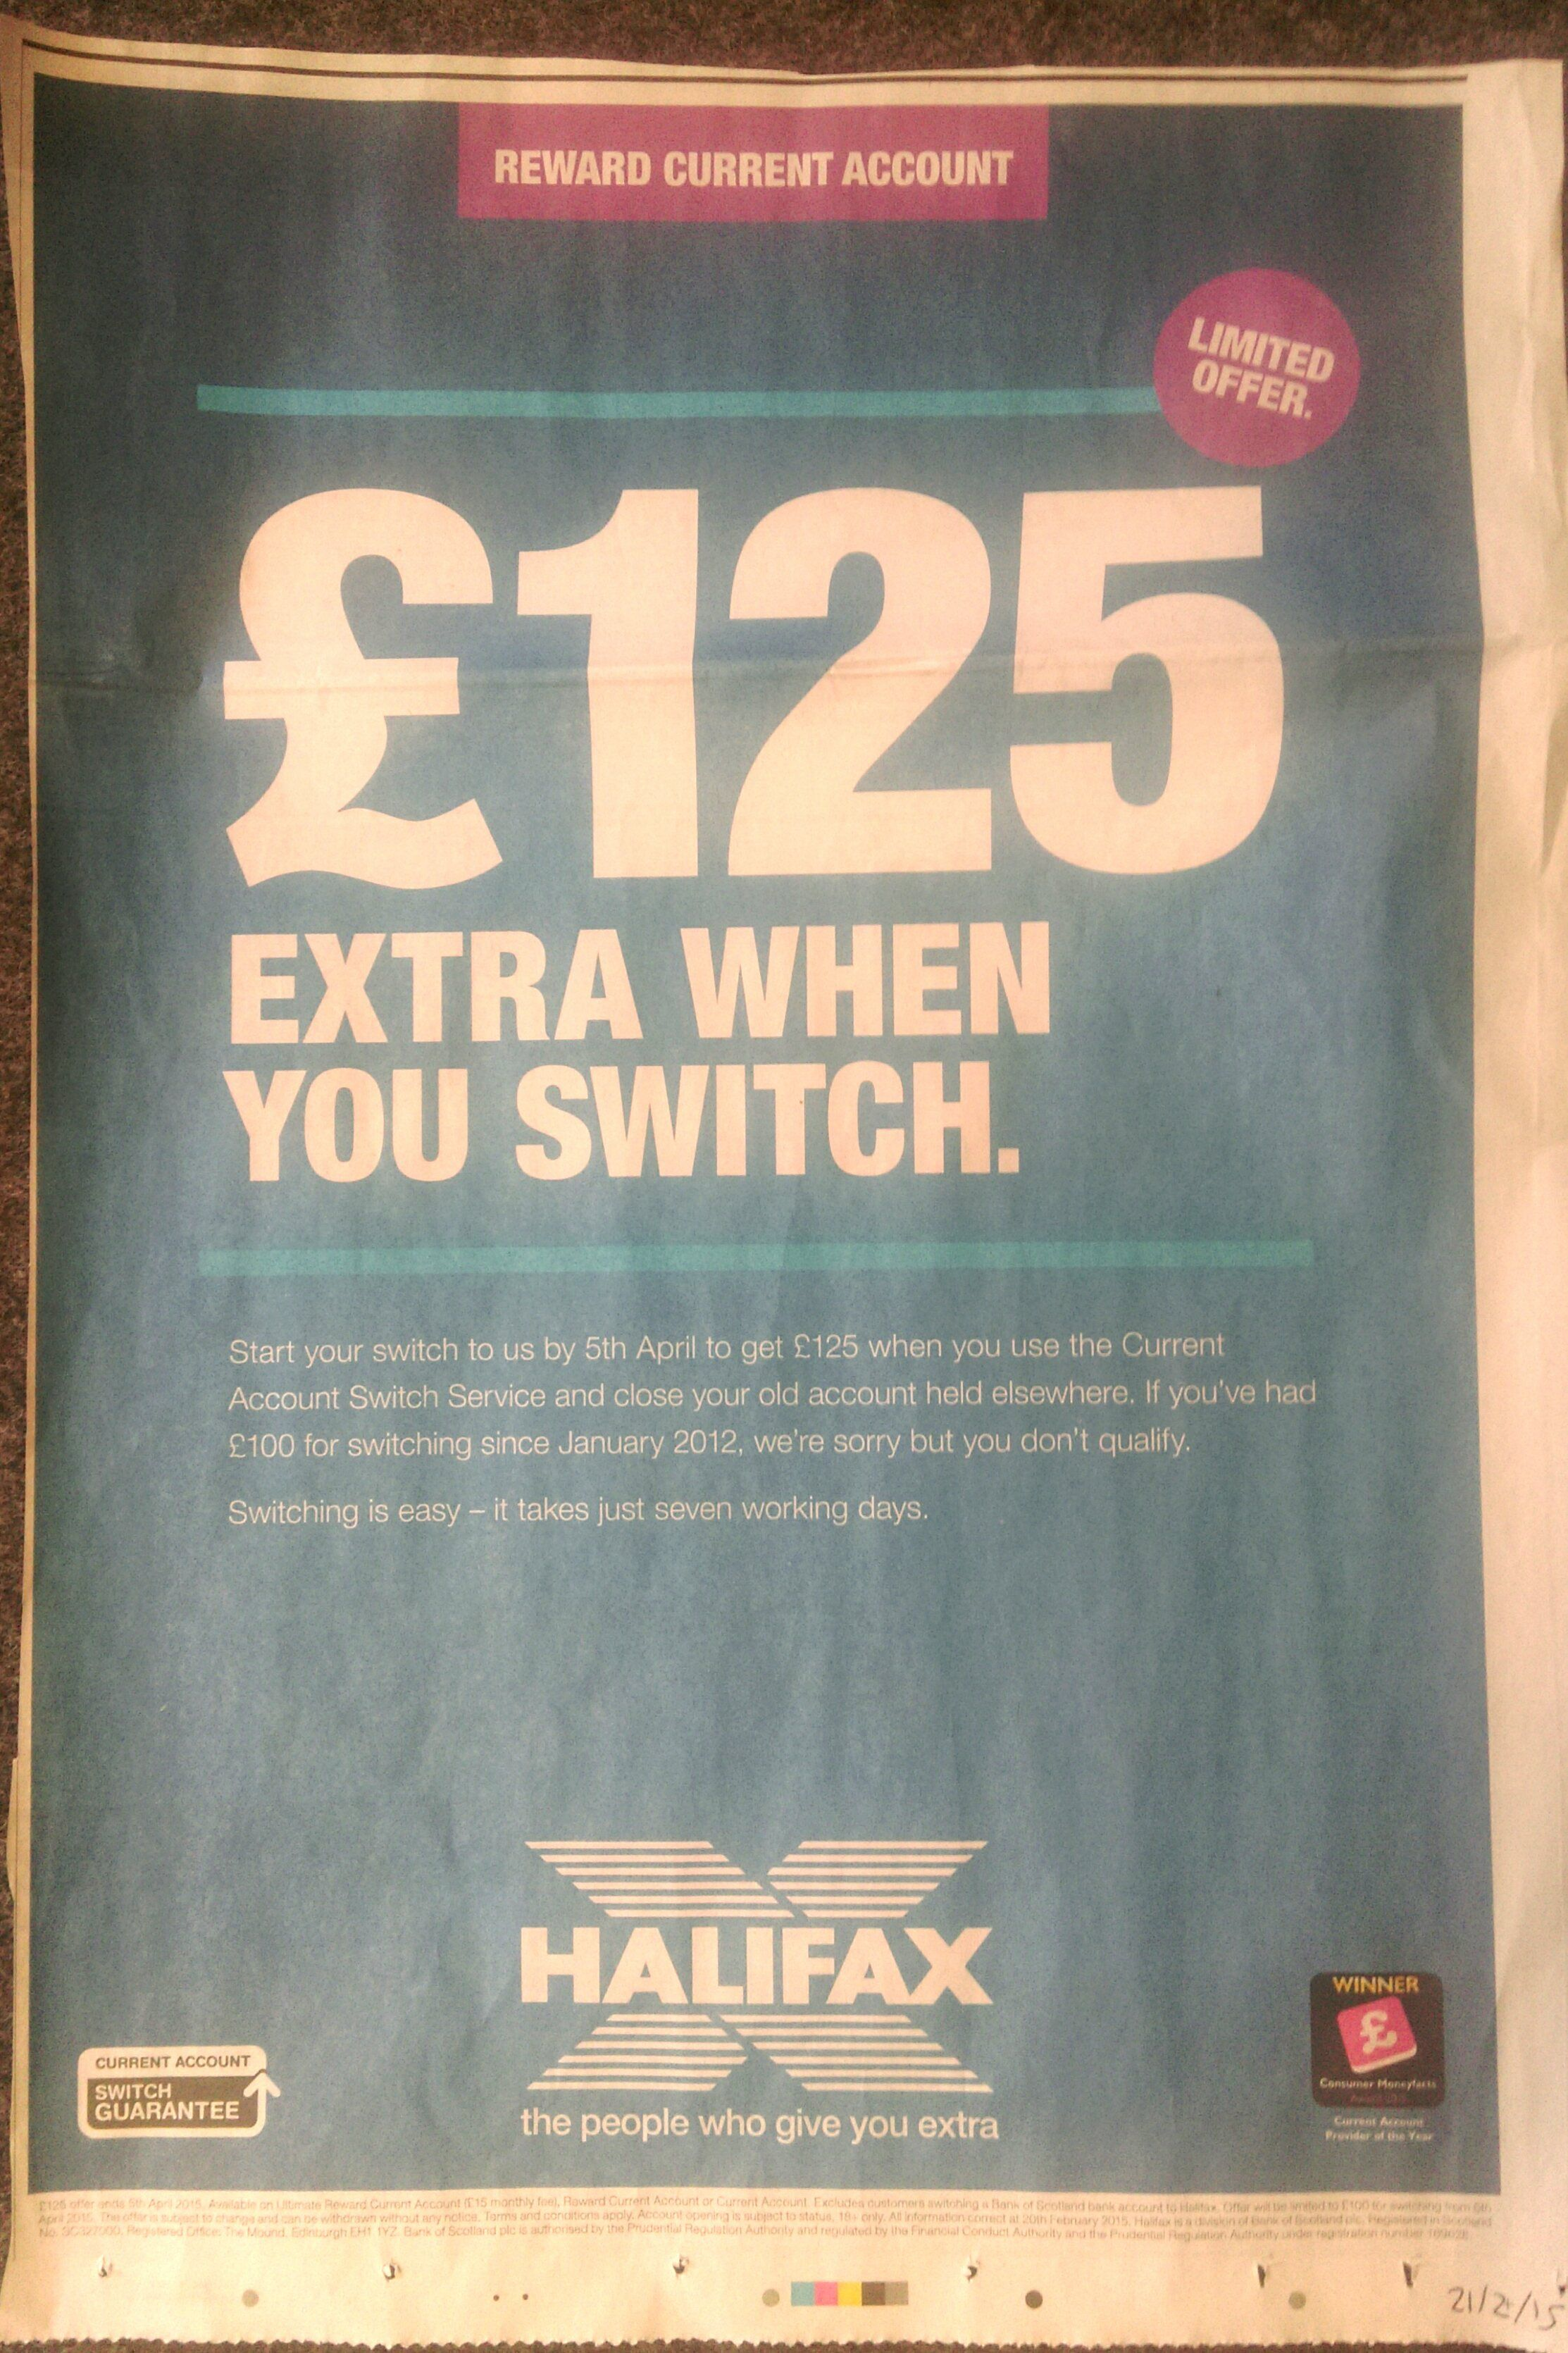 Nice little #CMFAward winner logo appearance for Current Account Provider of the Year in this Halifax newspaper ad.